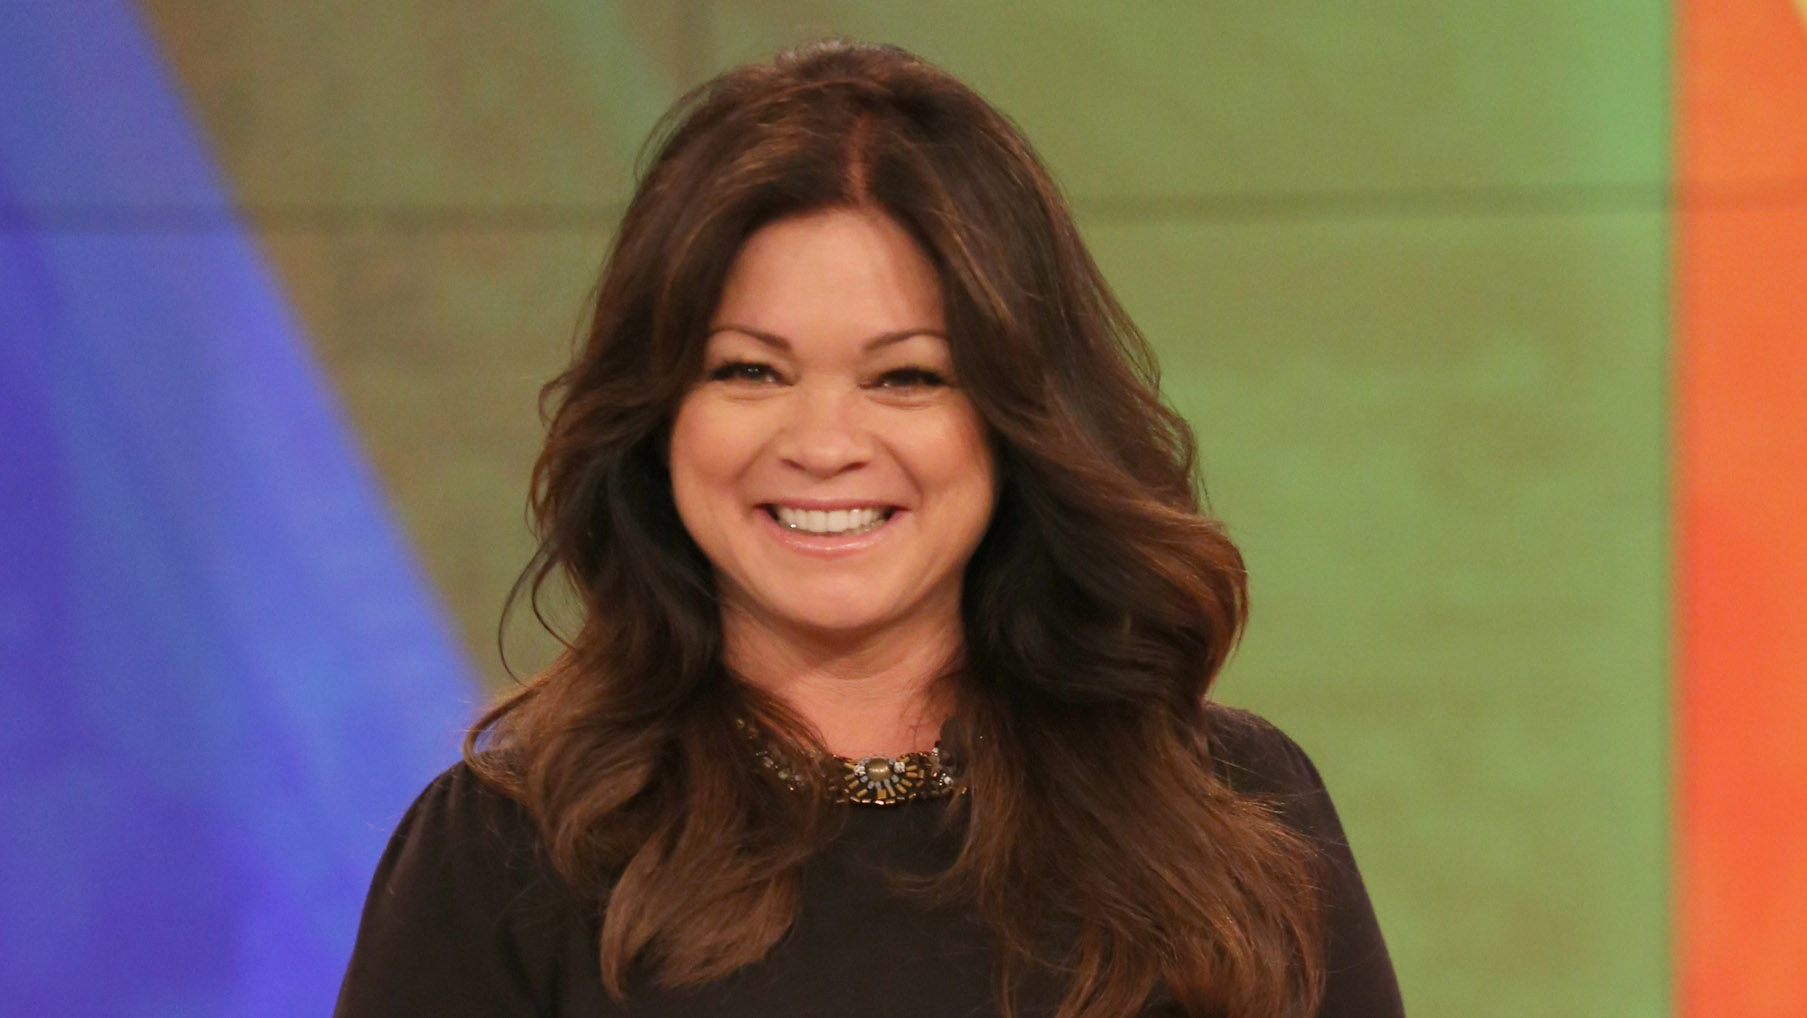 Valerie Bertinelli Gets Real About Why She Quit Acting: 'I Was Never Quite Comfortable'